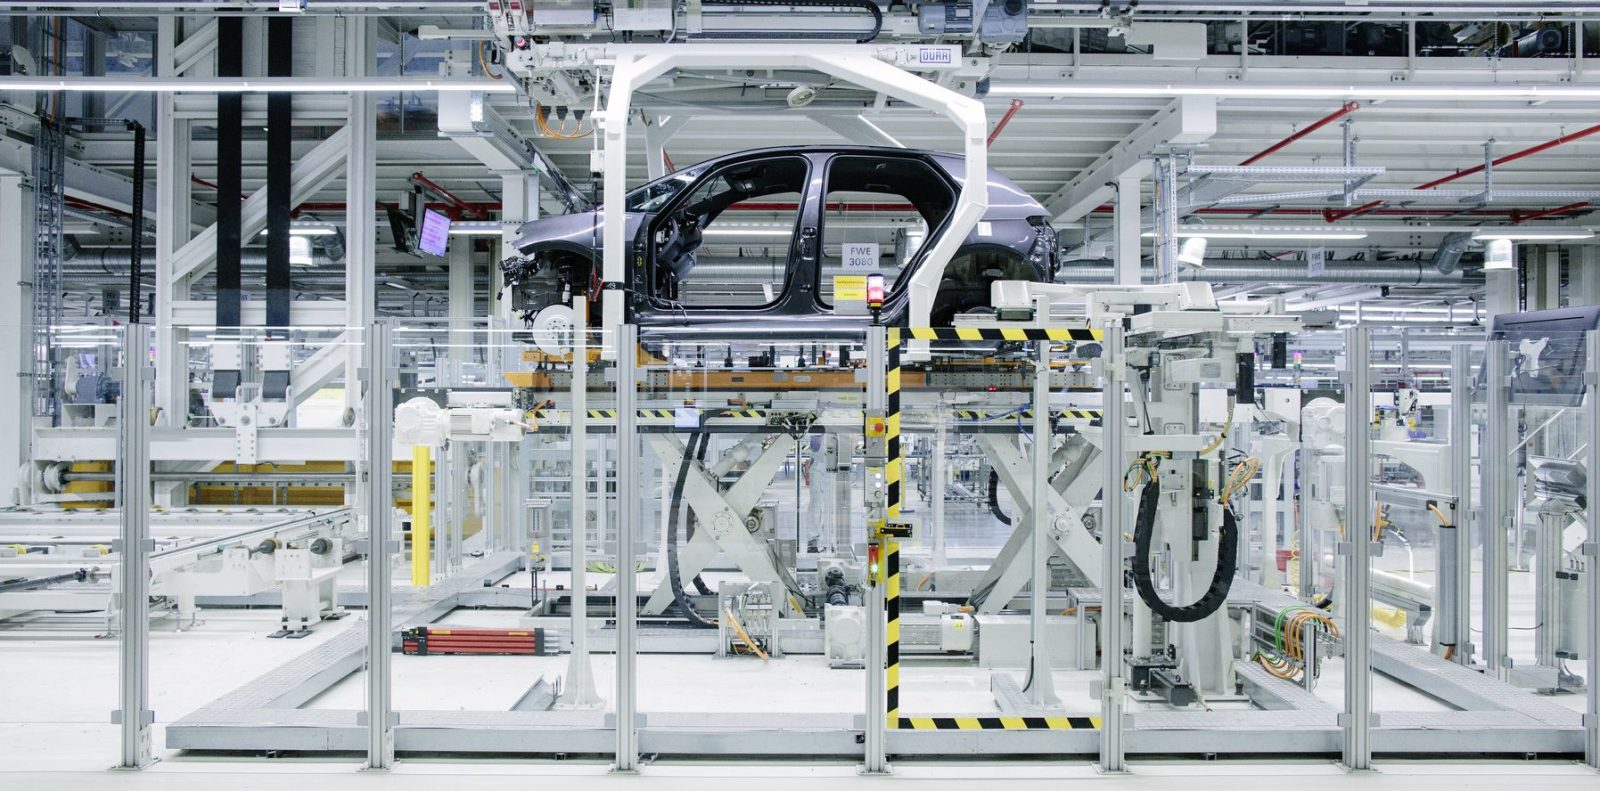 VW has already produced 400 ID.3 electric cars, volume production starts in November